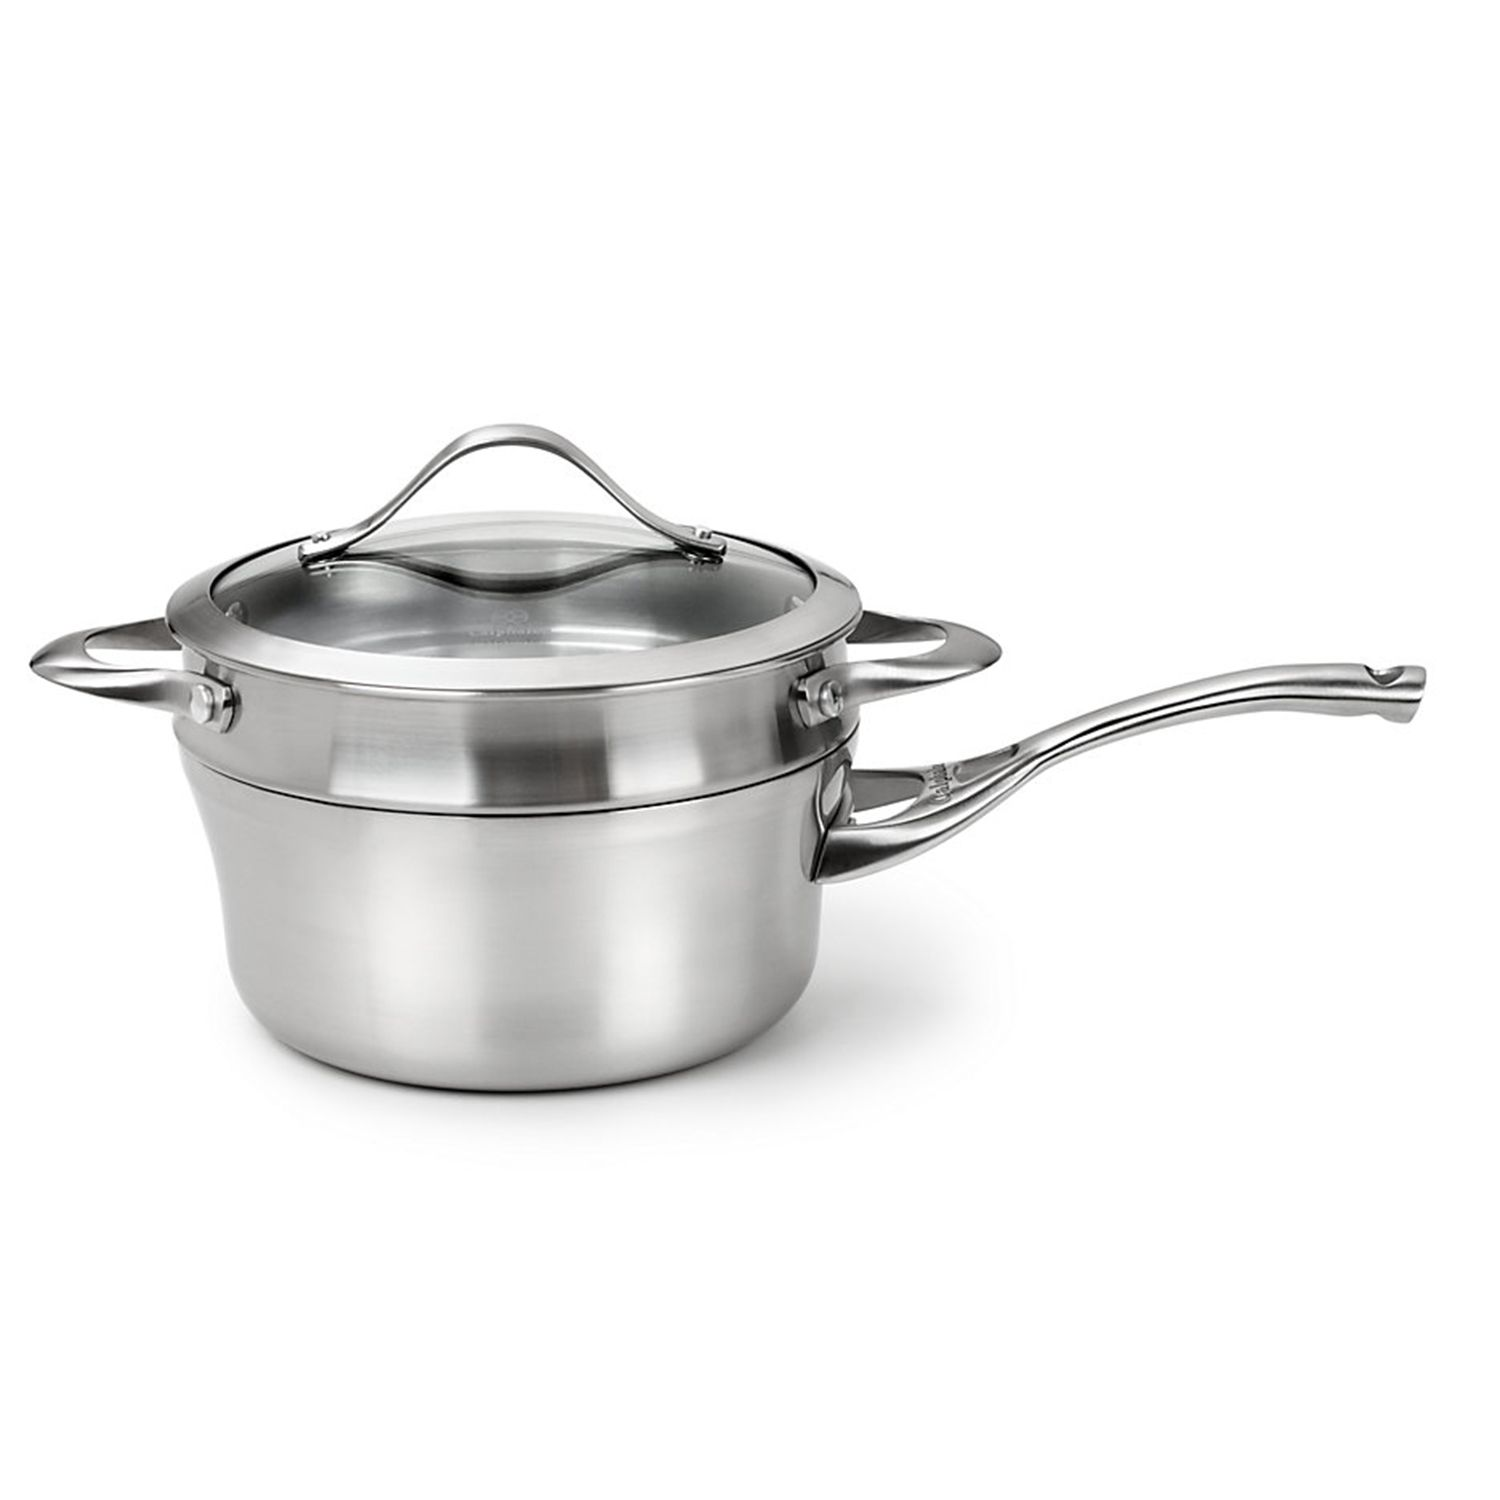 calphalon stainless 25qt covered stainless steel saucepan with double boiler insert